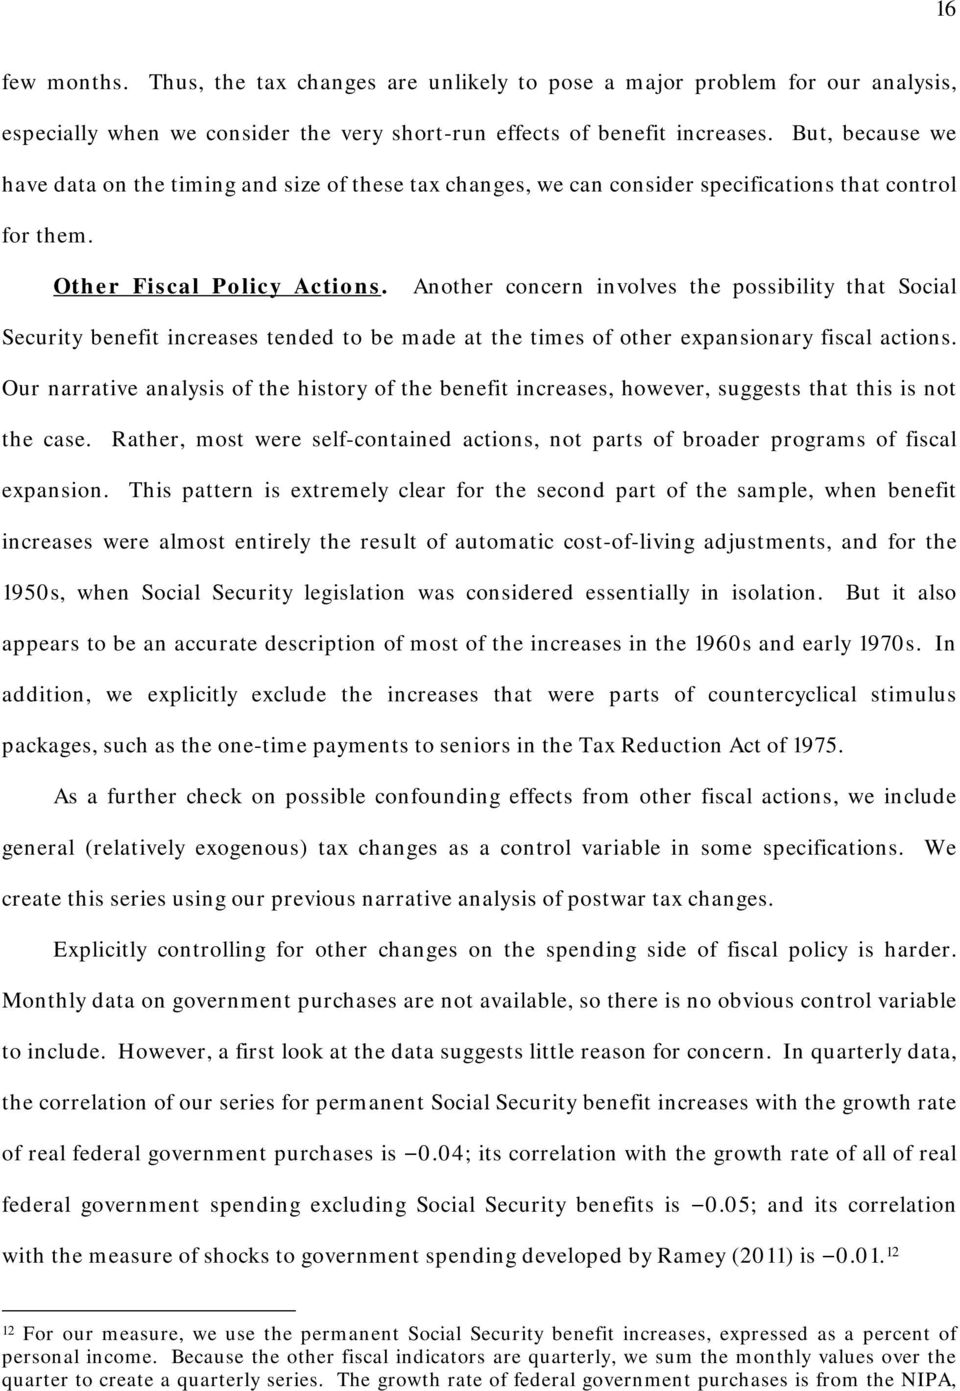 Another concern involves the possibility that Social Security benefit increases tended to be made at the times of other expansionary fiscal actions.